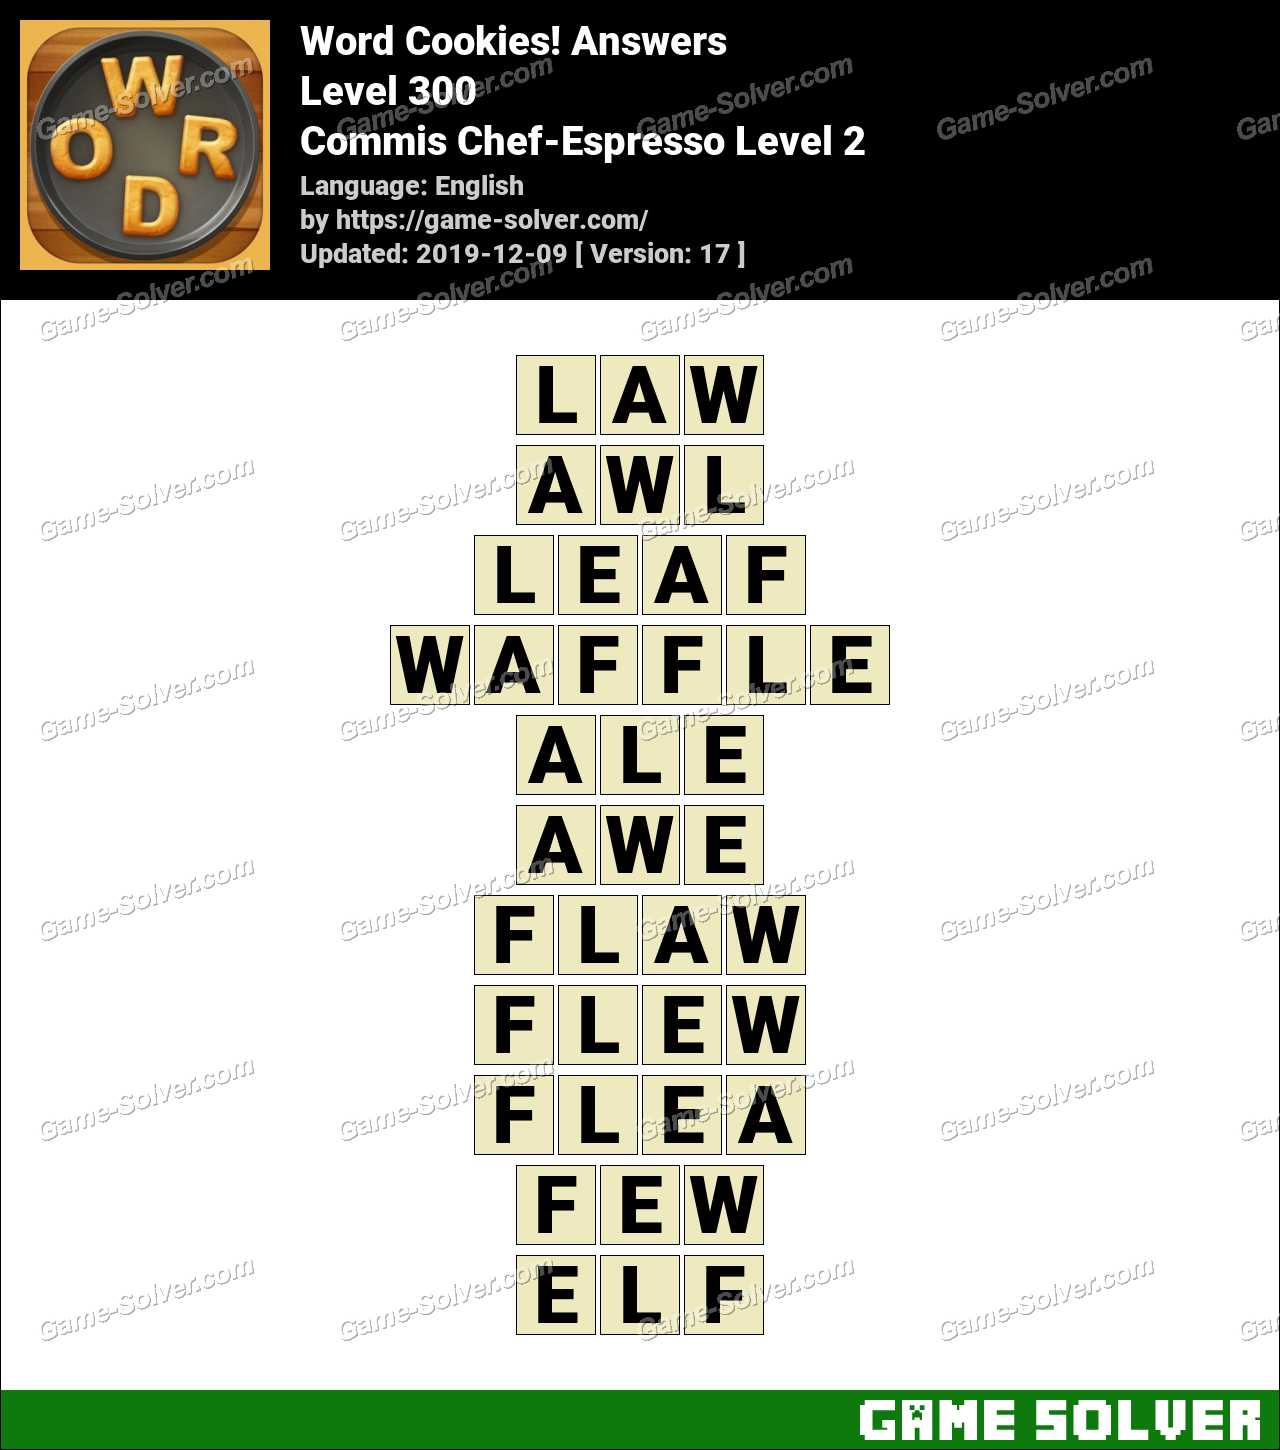 Word Cookies Commis Chef-Espresso Level 2 Answers